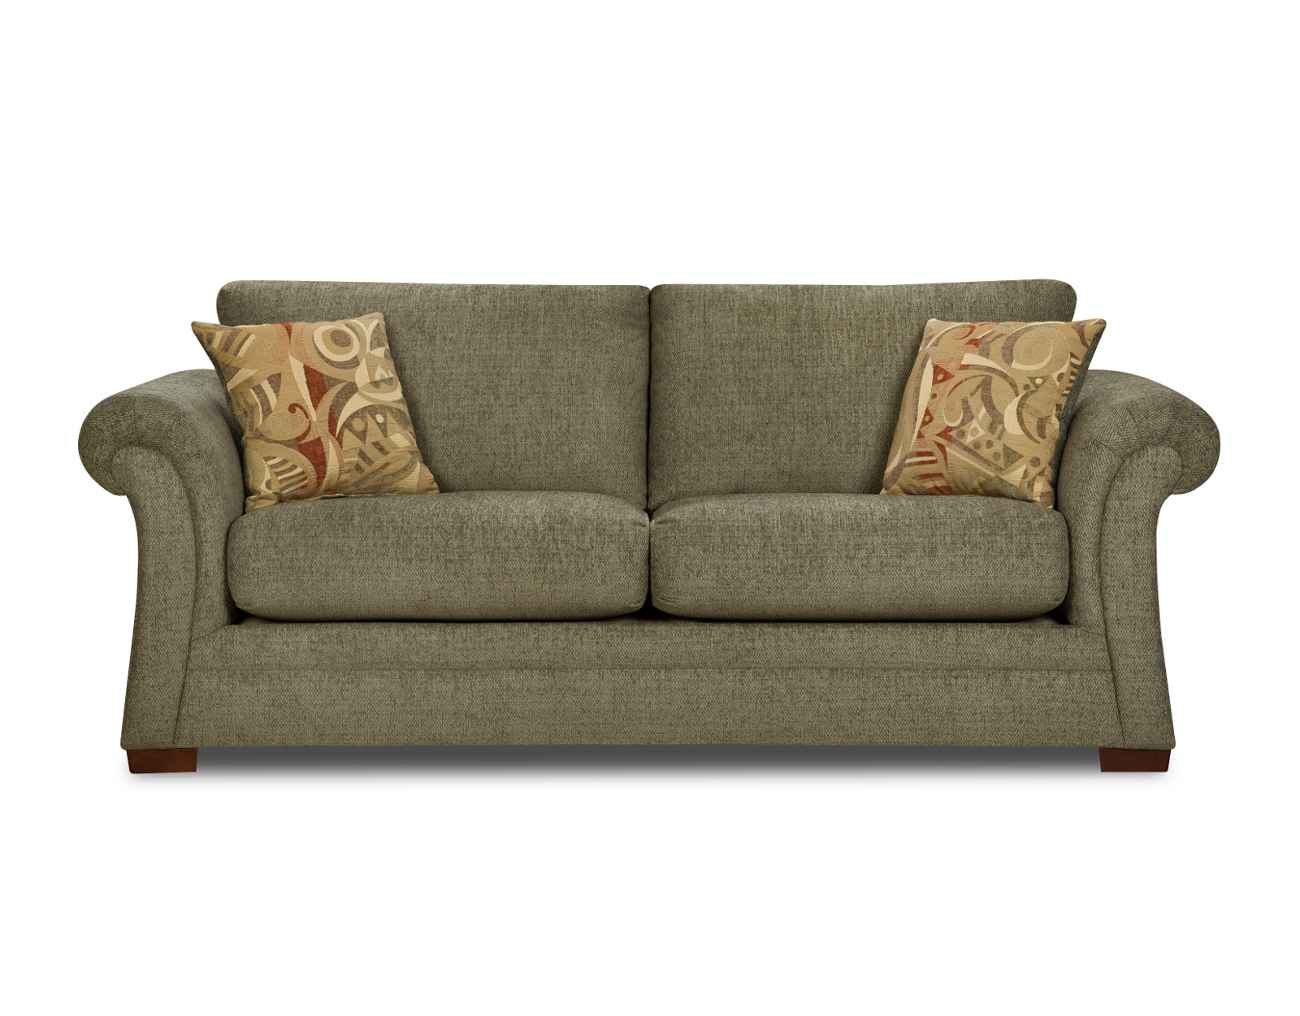 Cute cheapest couches available online couch sofa for Cheap affordable couches